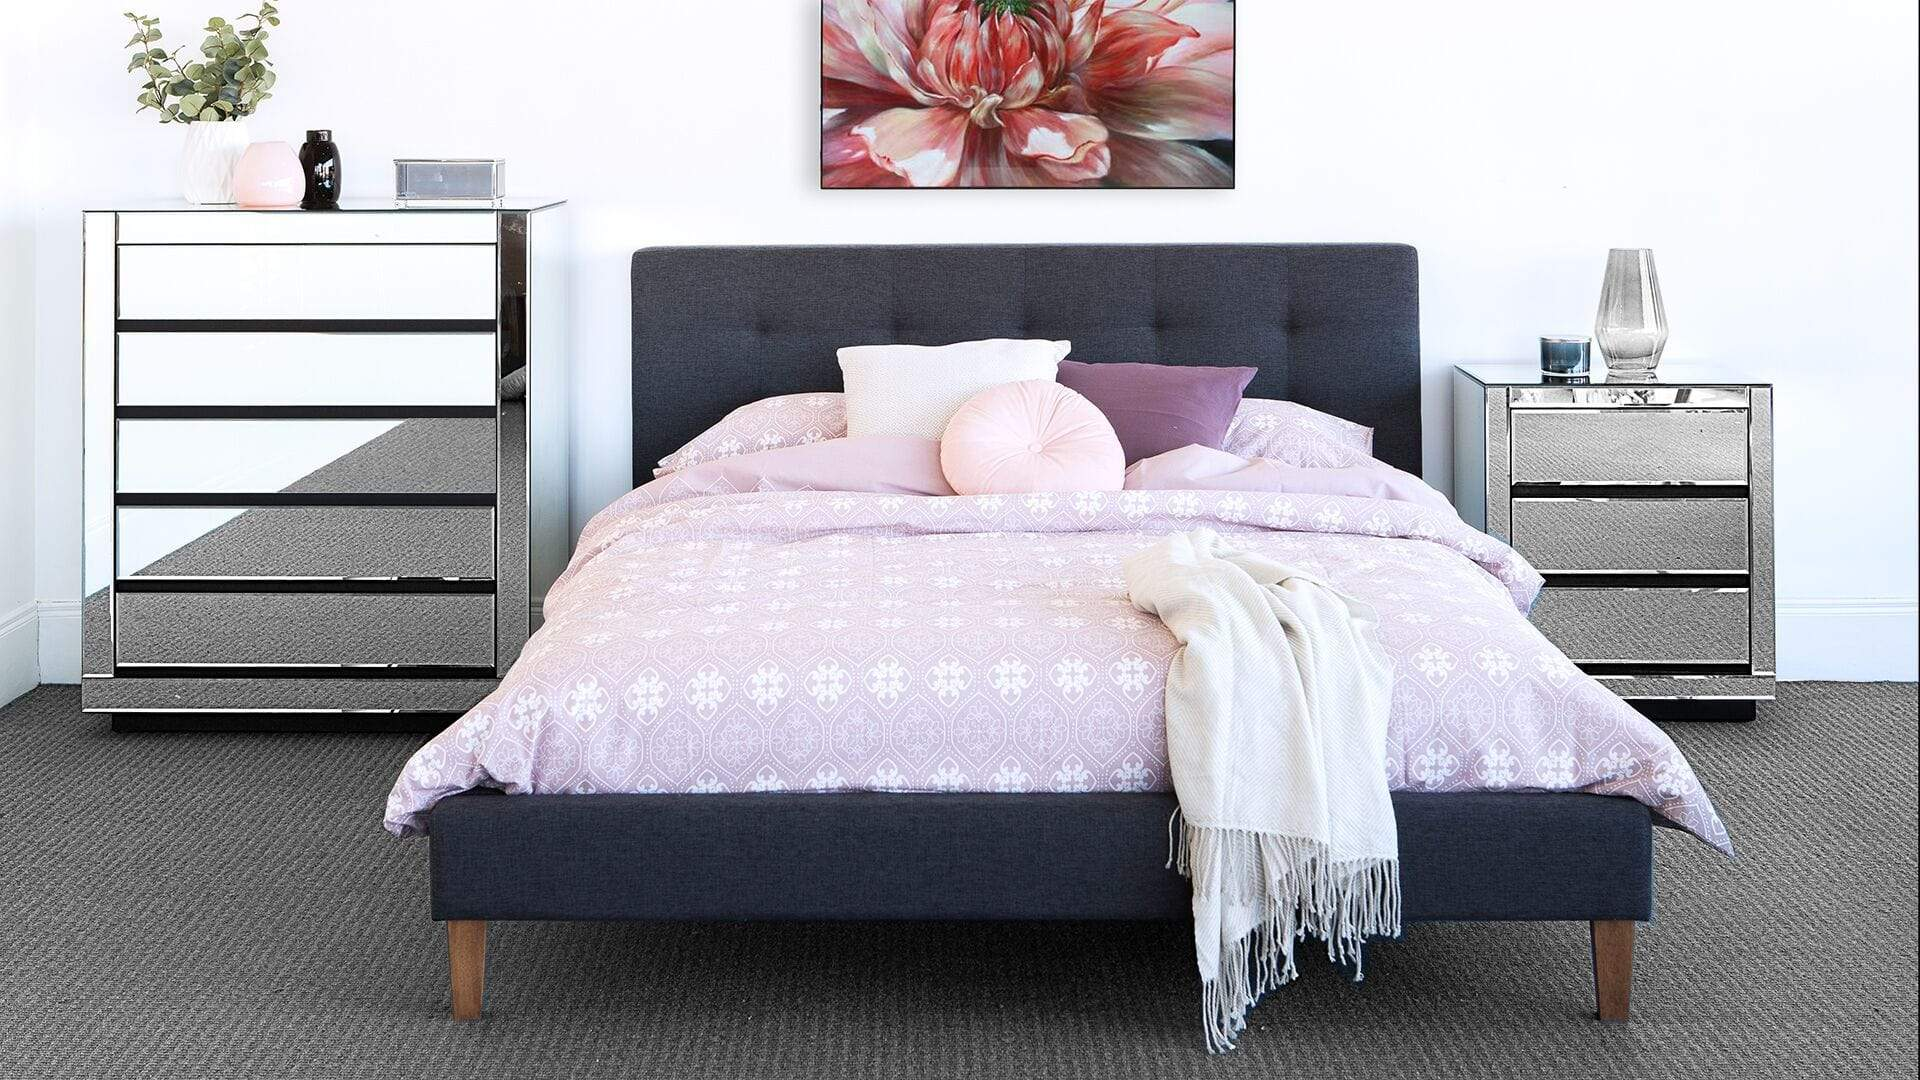 mirrored tallboy, bedside table and fabric bedframe with mattress